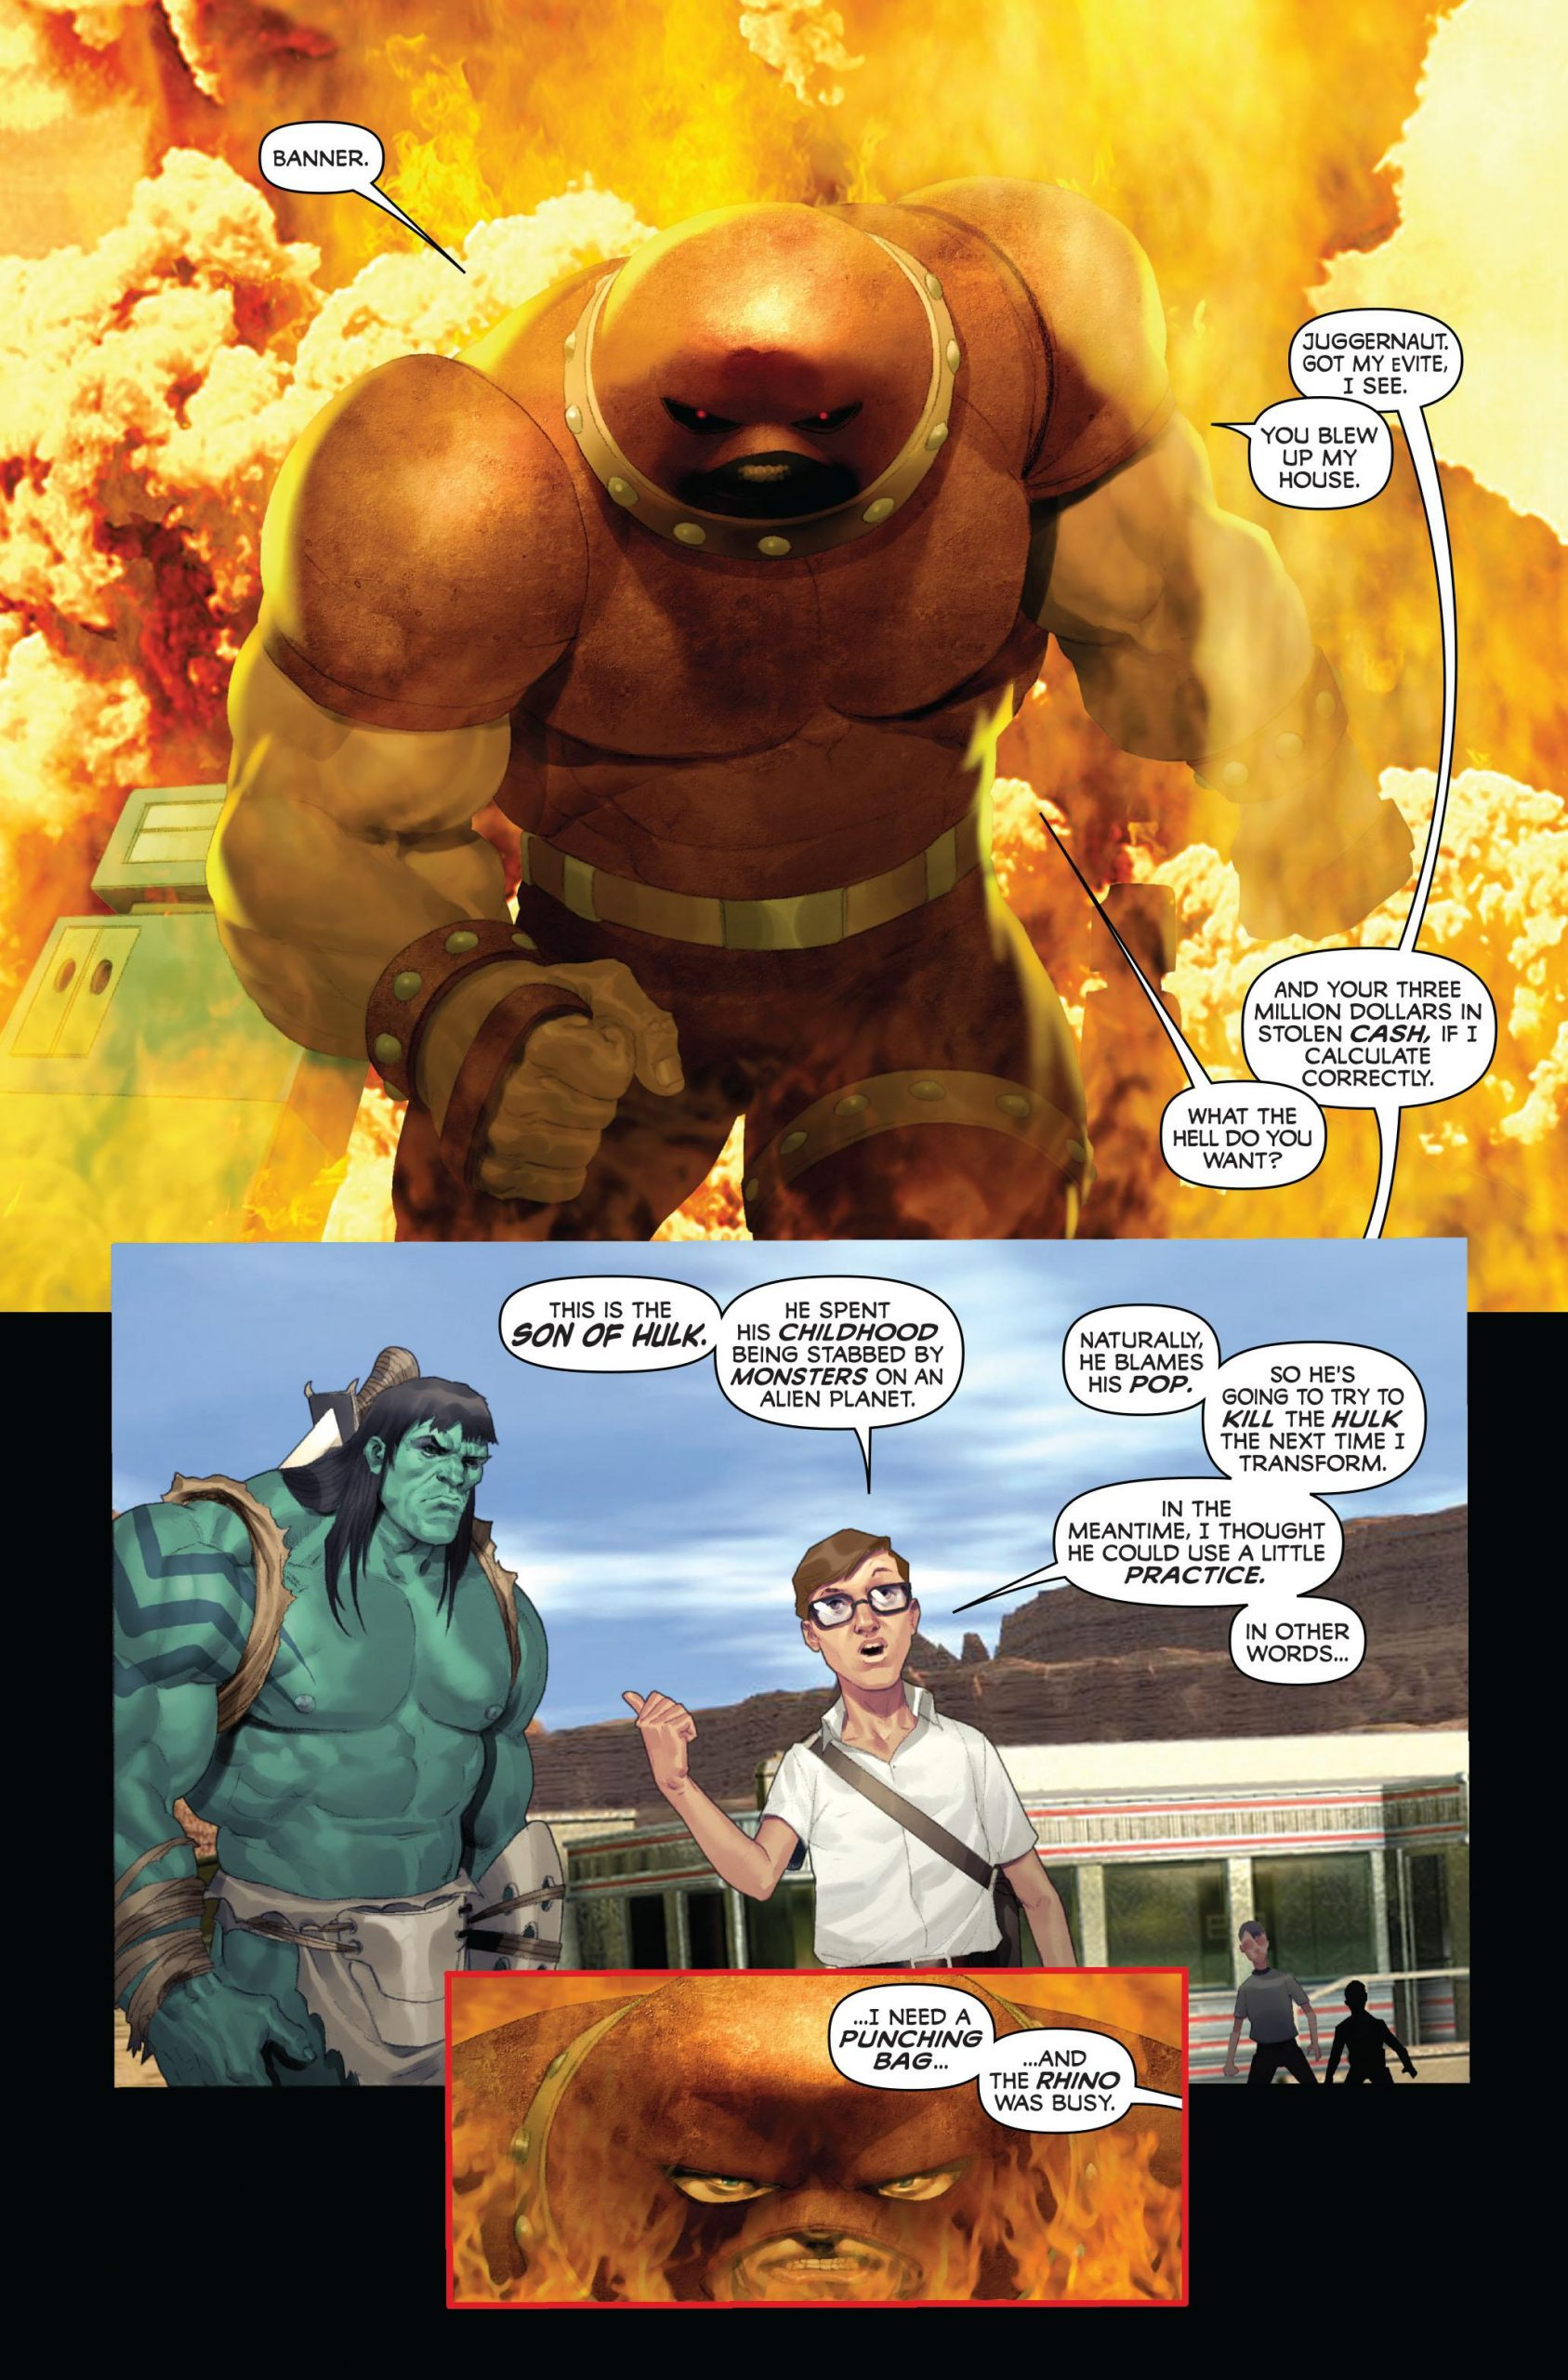 Incredible Hulk - Son of Banner review